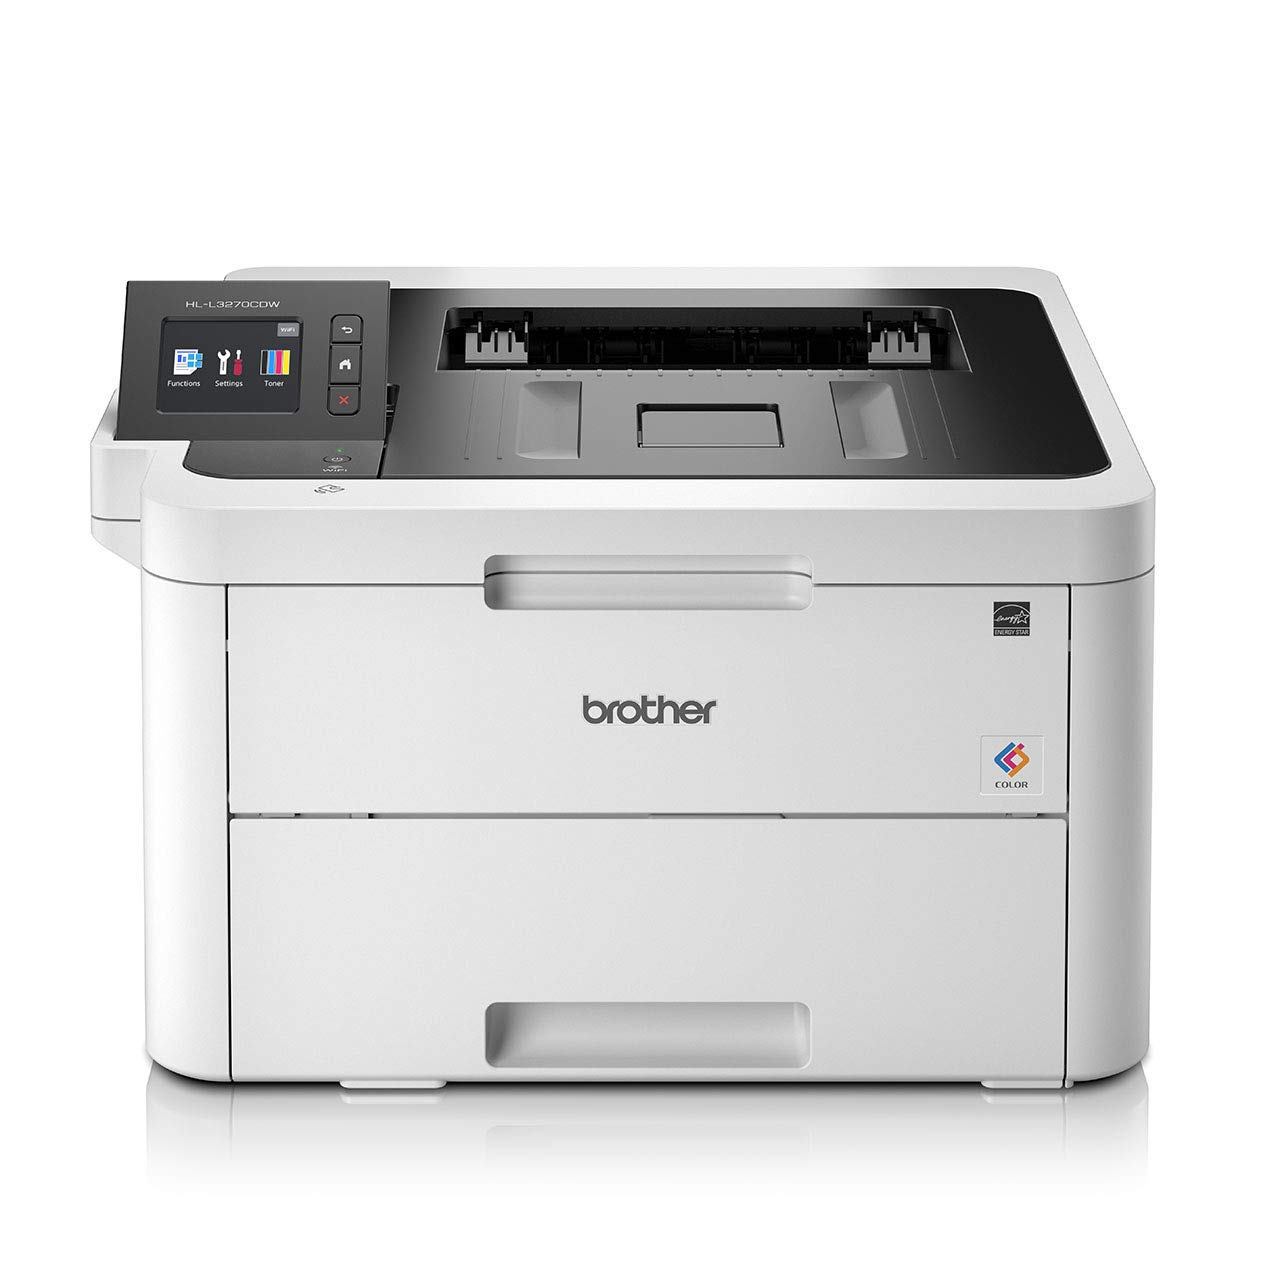 Brother Compact Digital Color Printer